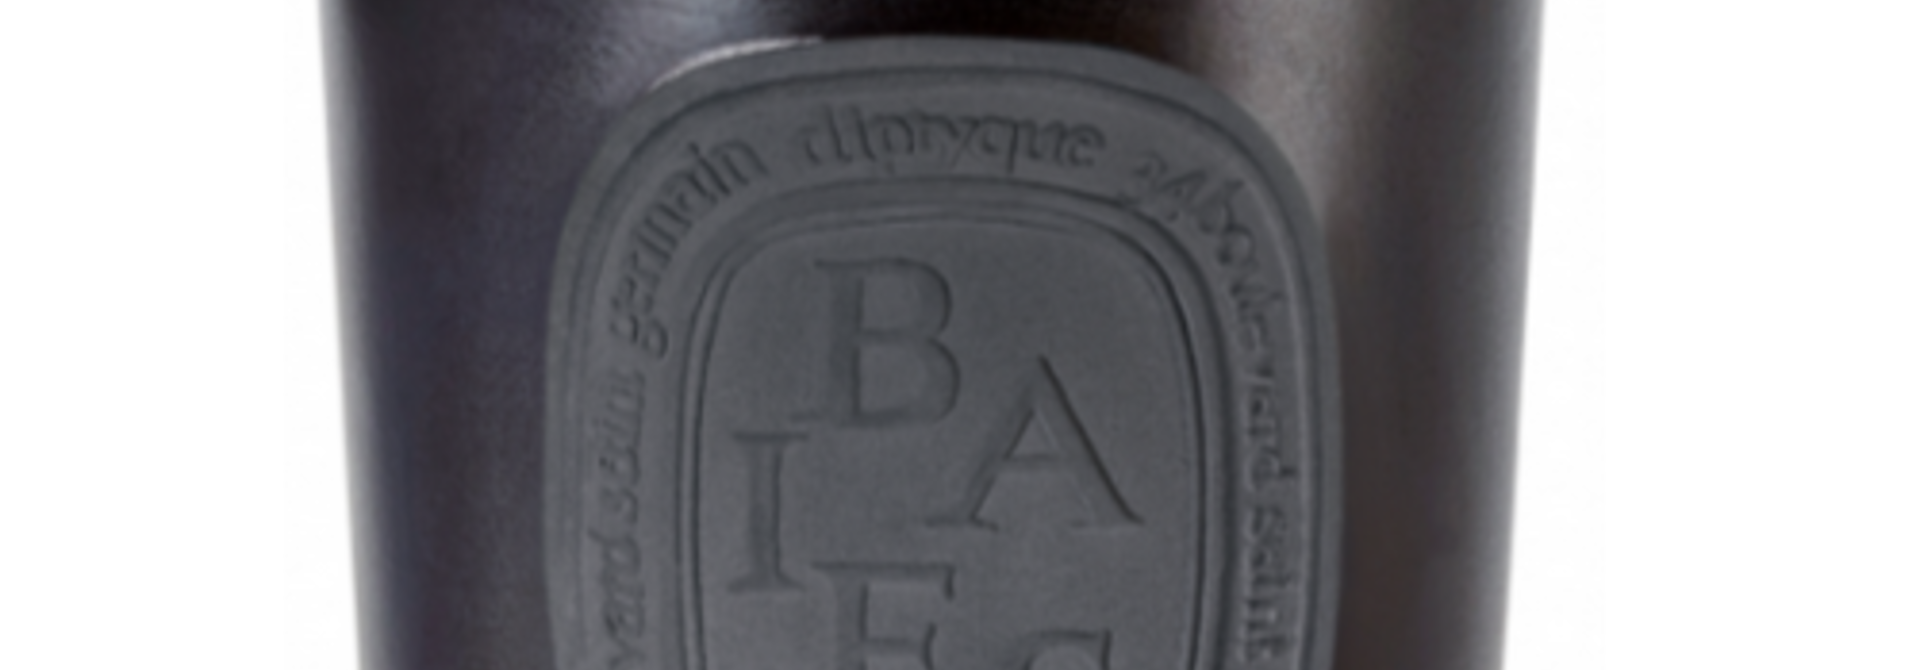 DIPTYQUE - Candle Baies 1500gr